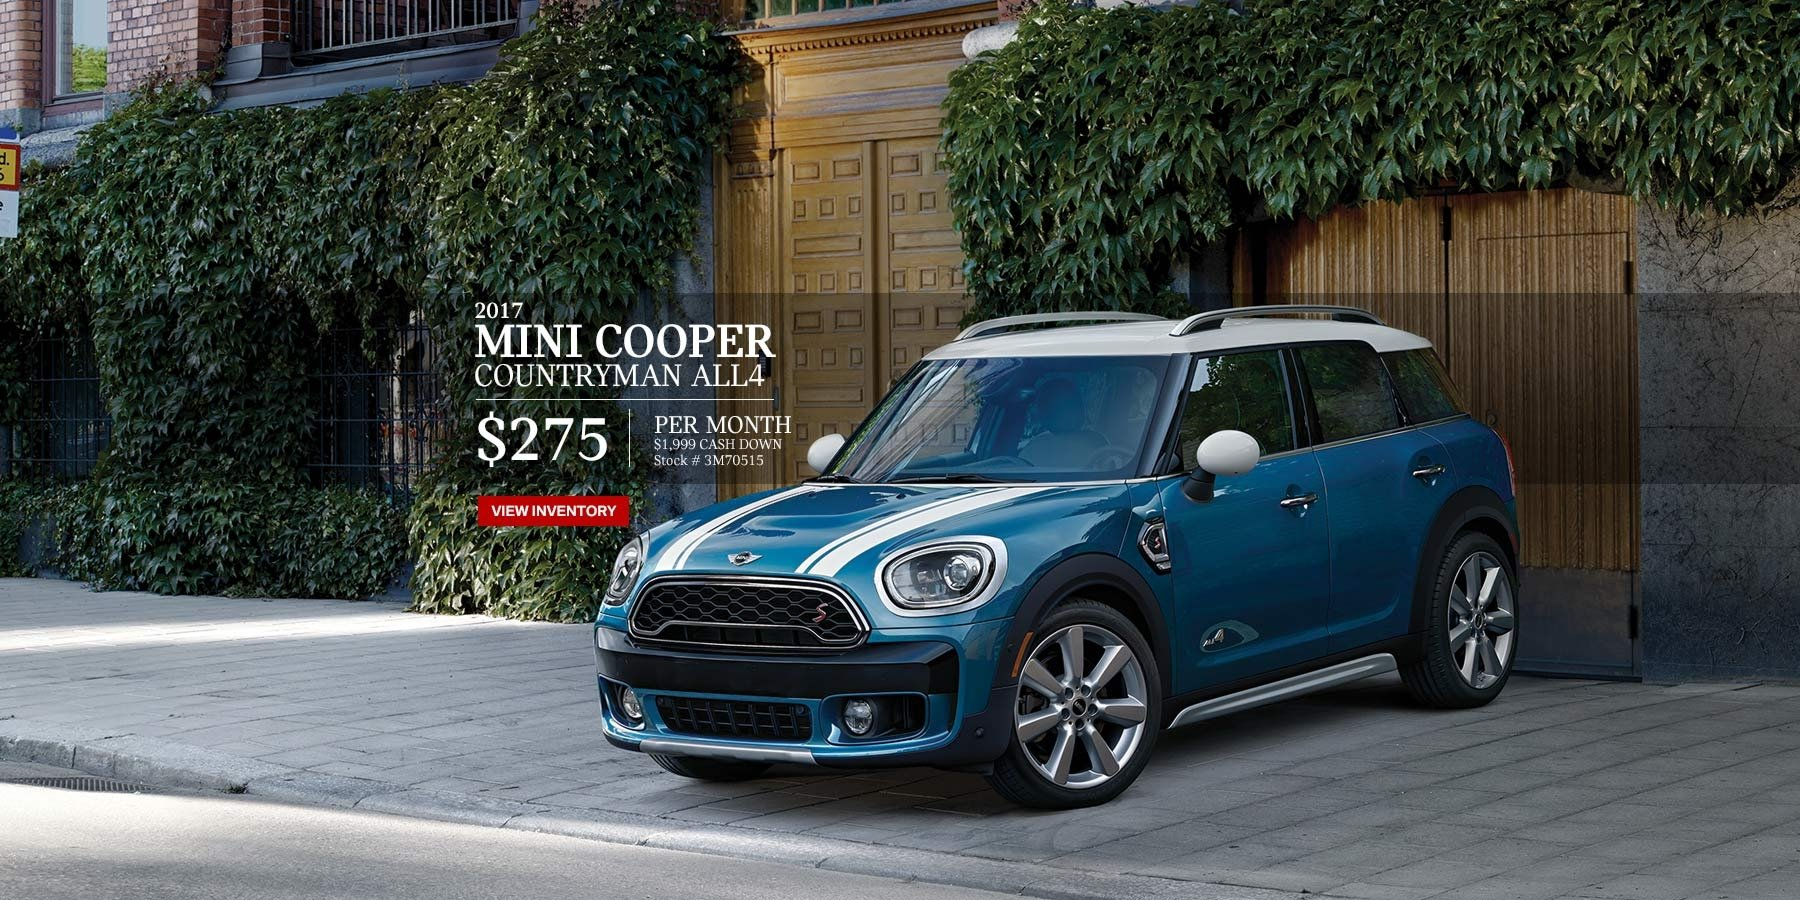 Schomp MINI in Highlands Ranch, CO | New and Pre-owned Cars